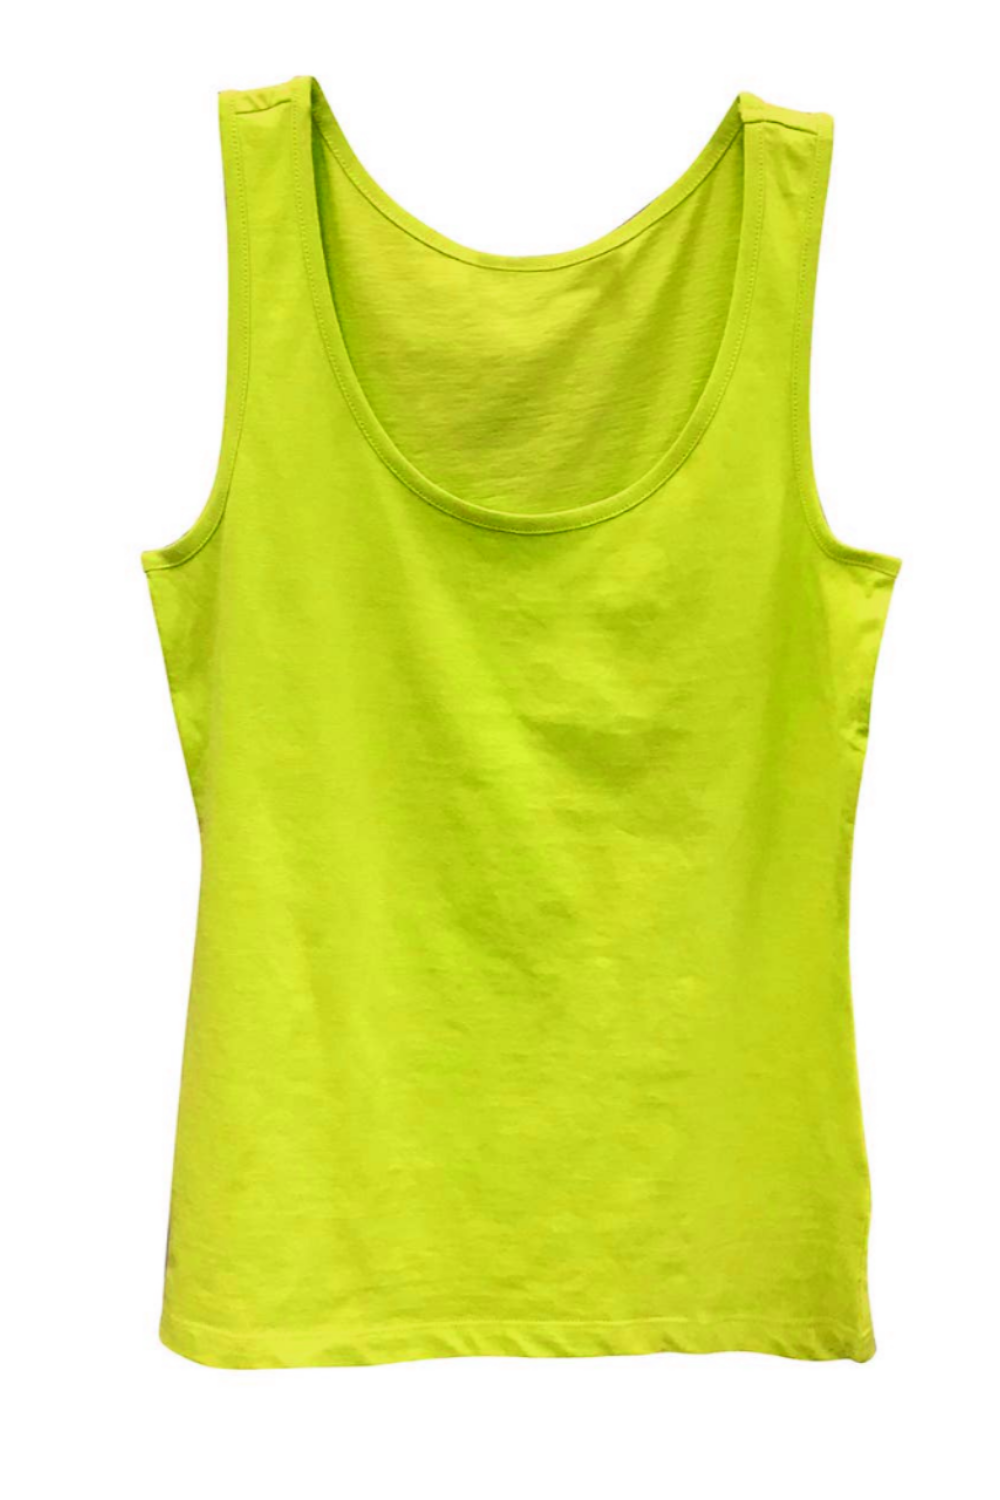 Boutique Tank Top Fluorescent Yellow | Bella Lucca Boutique